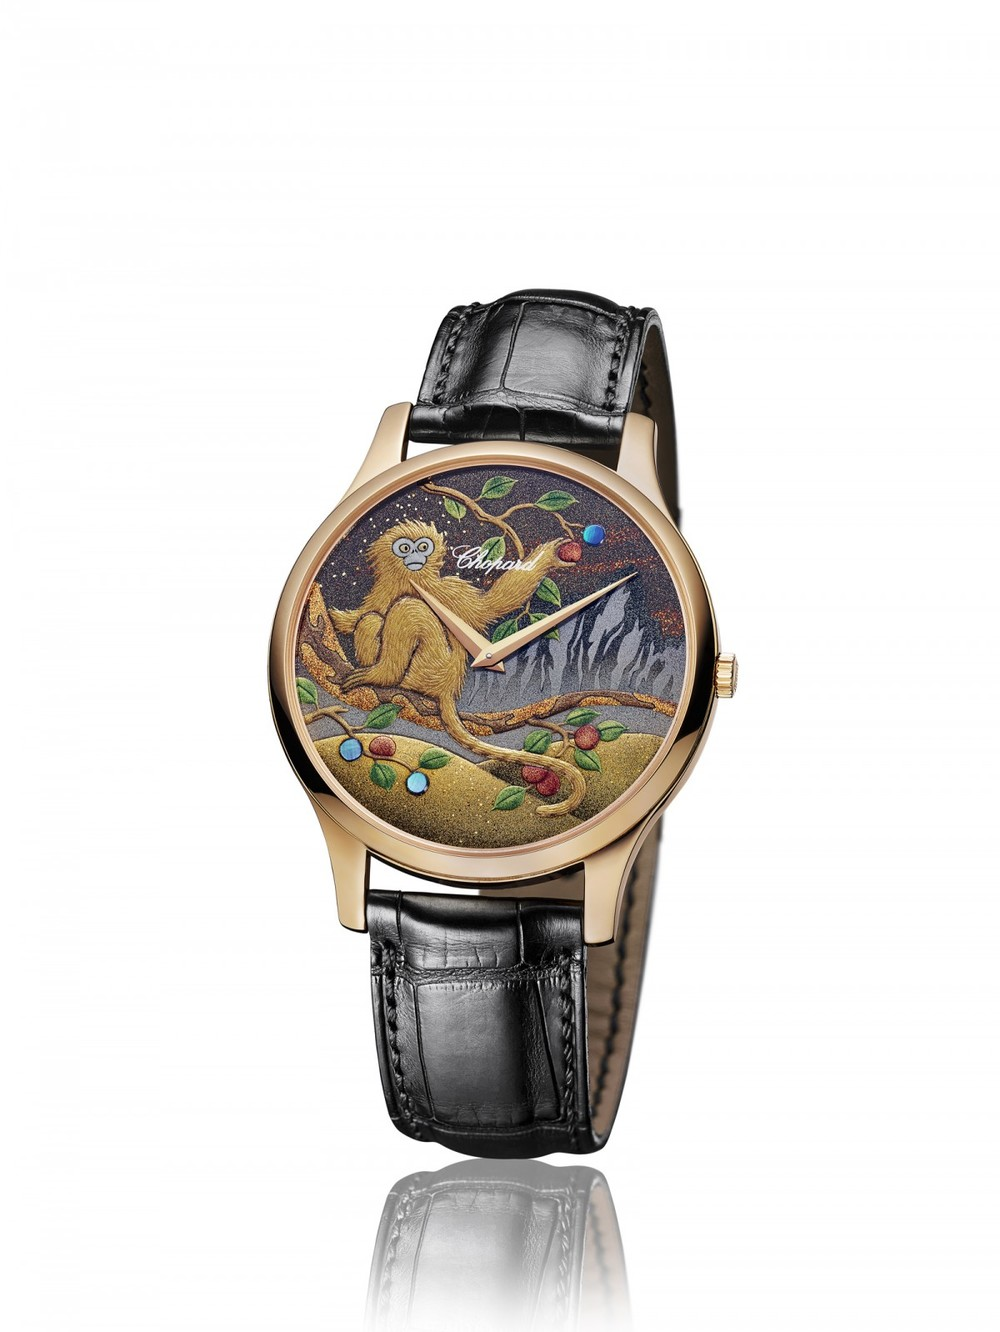 Chopard_LUC_Year_of_the_monkey_XP_Urushi